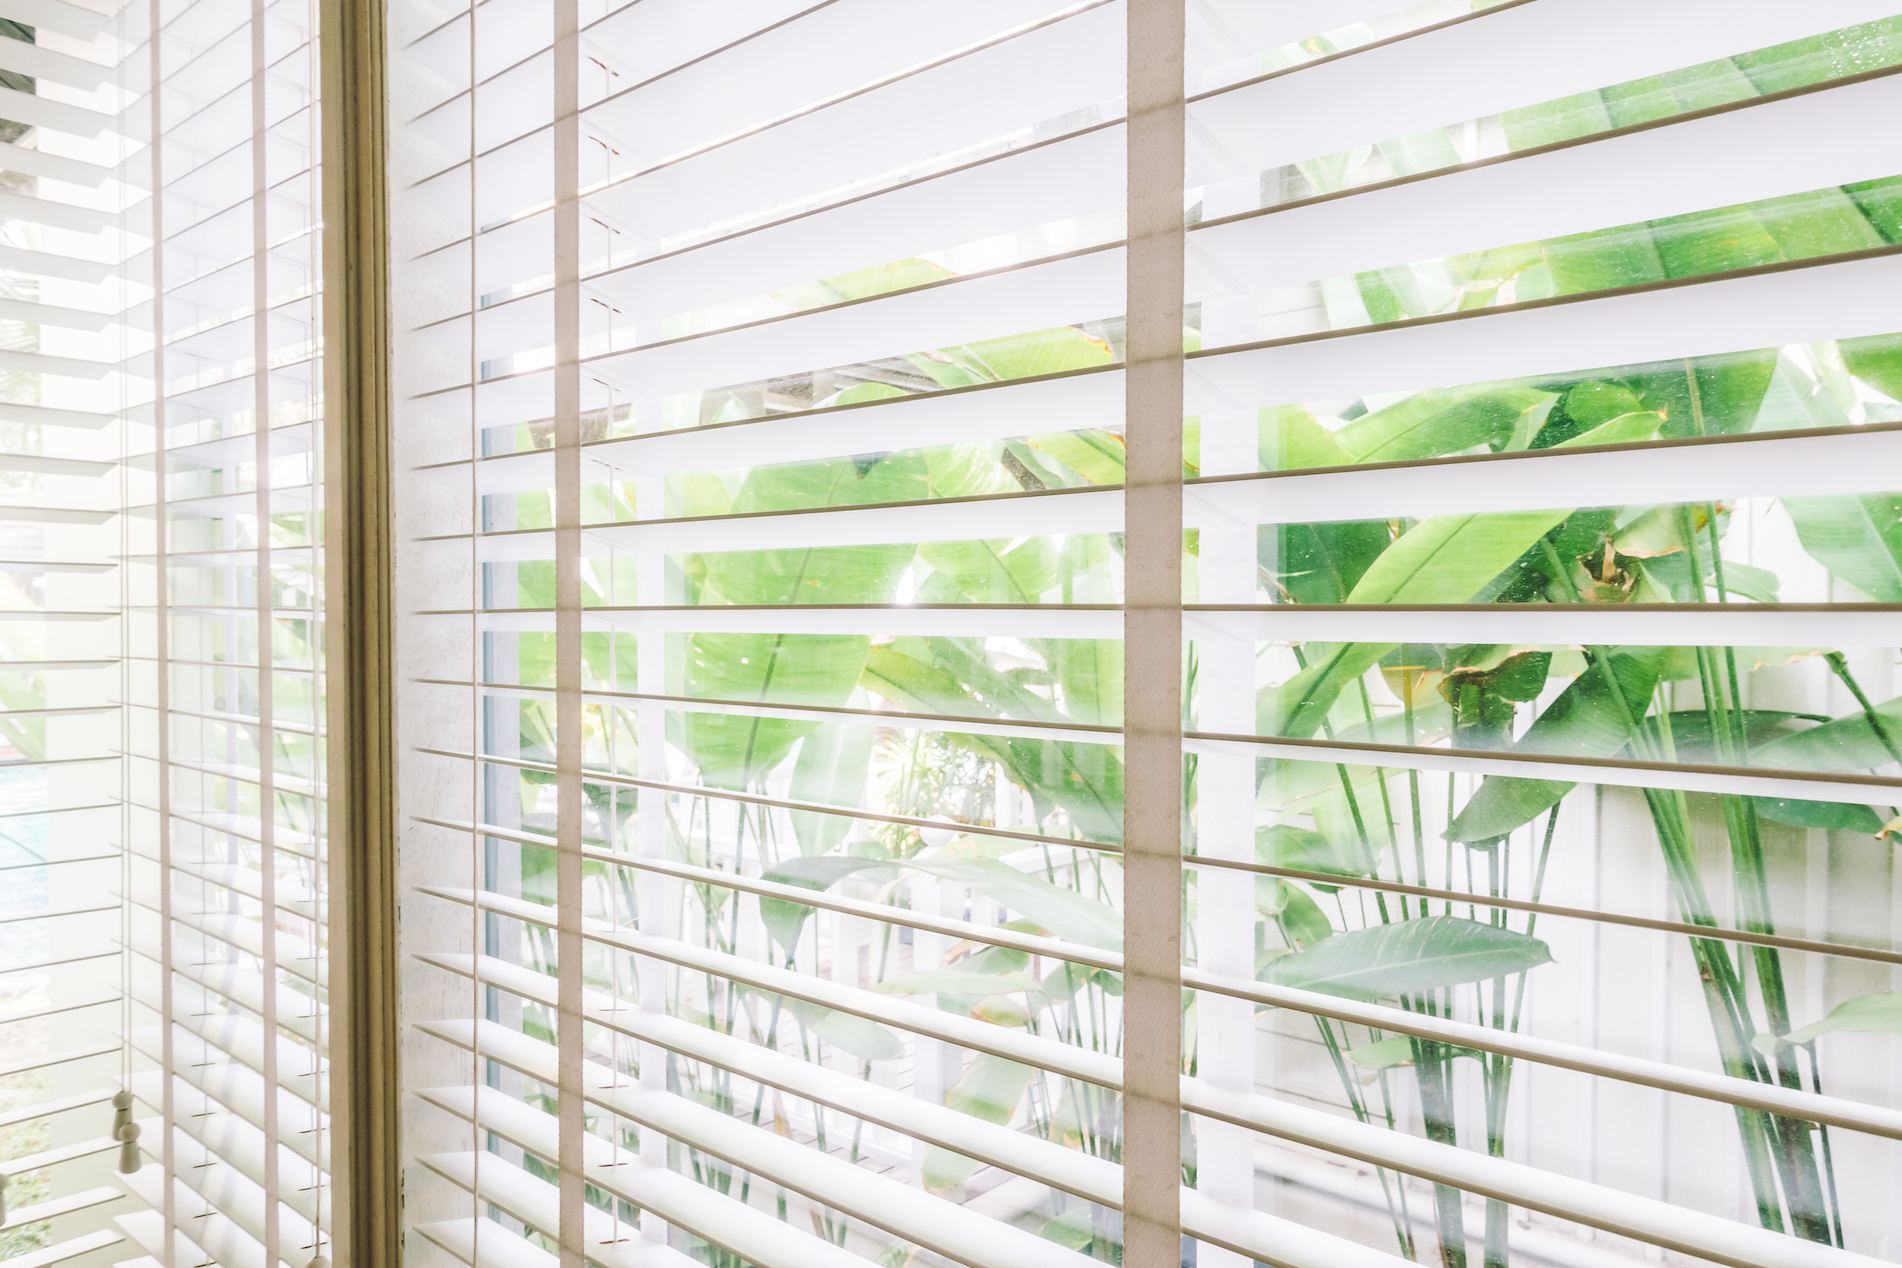 Tips for choosing the correct window blind